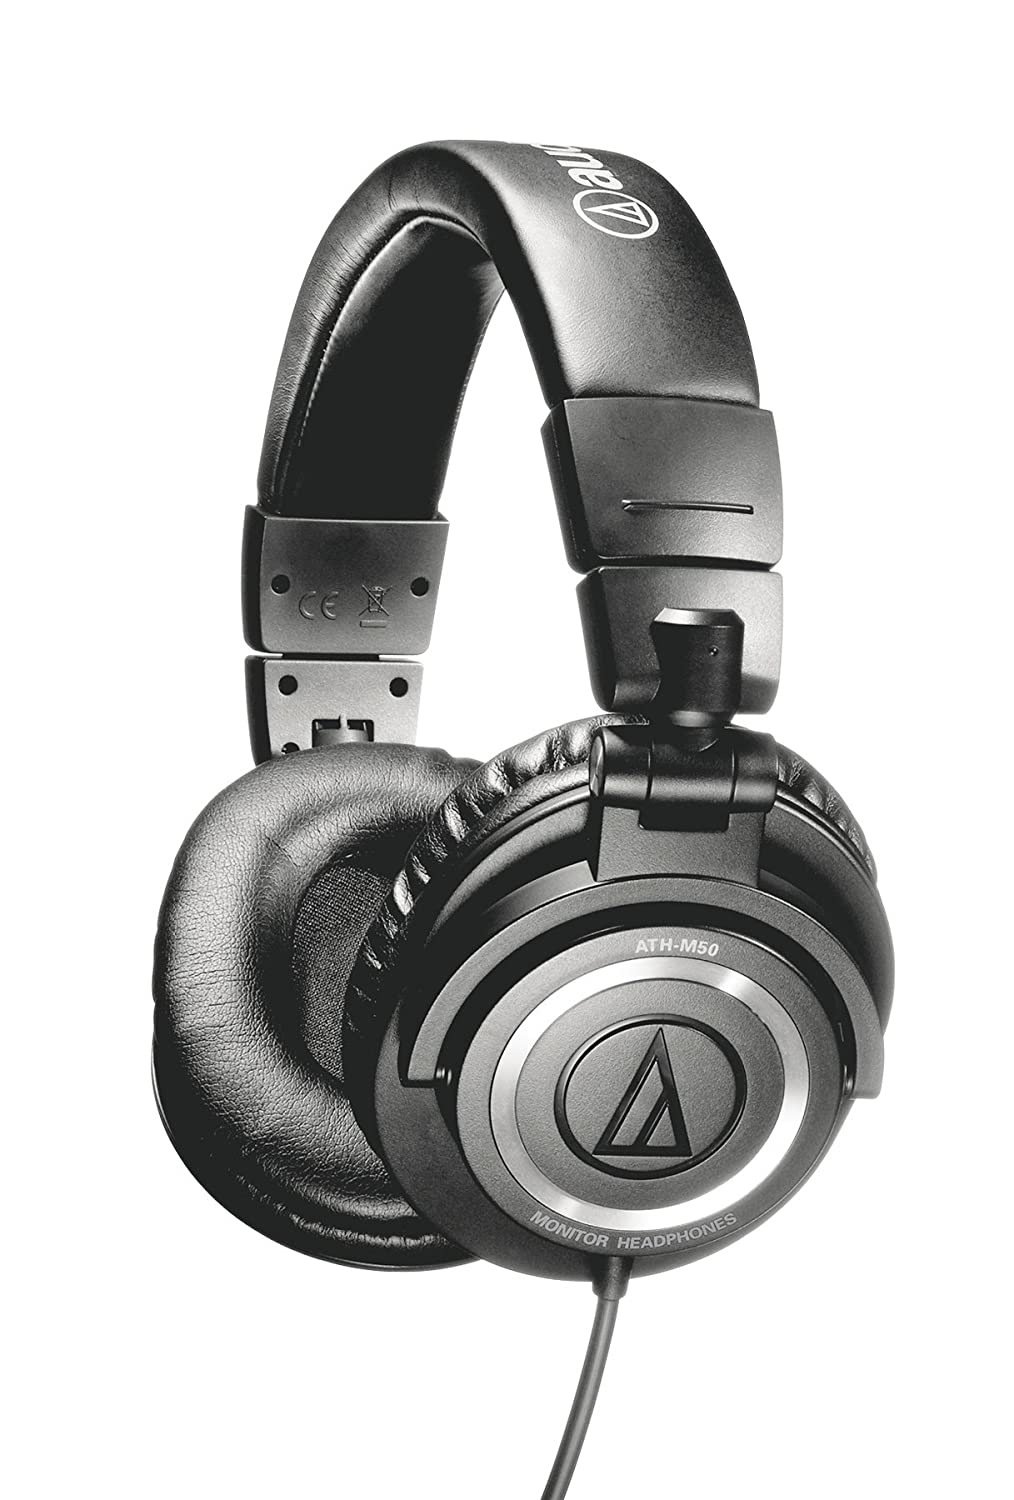 Audio-Technica ATH-M50 Professional Studio Monitor Headphones with Coiled Cable $104.00